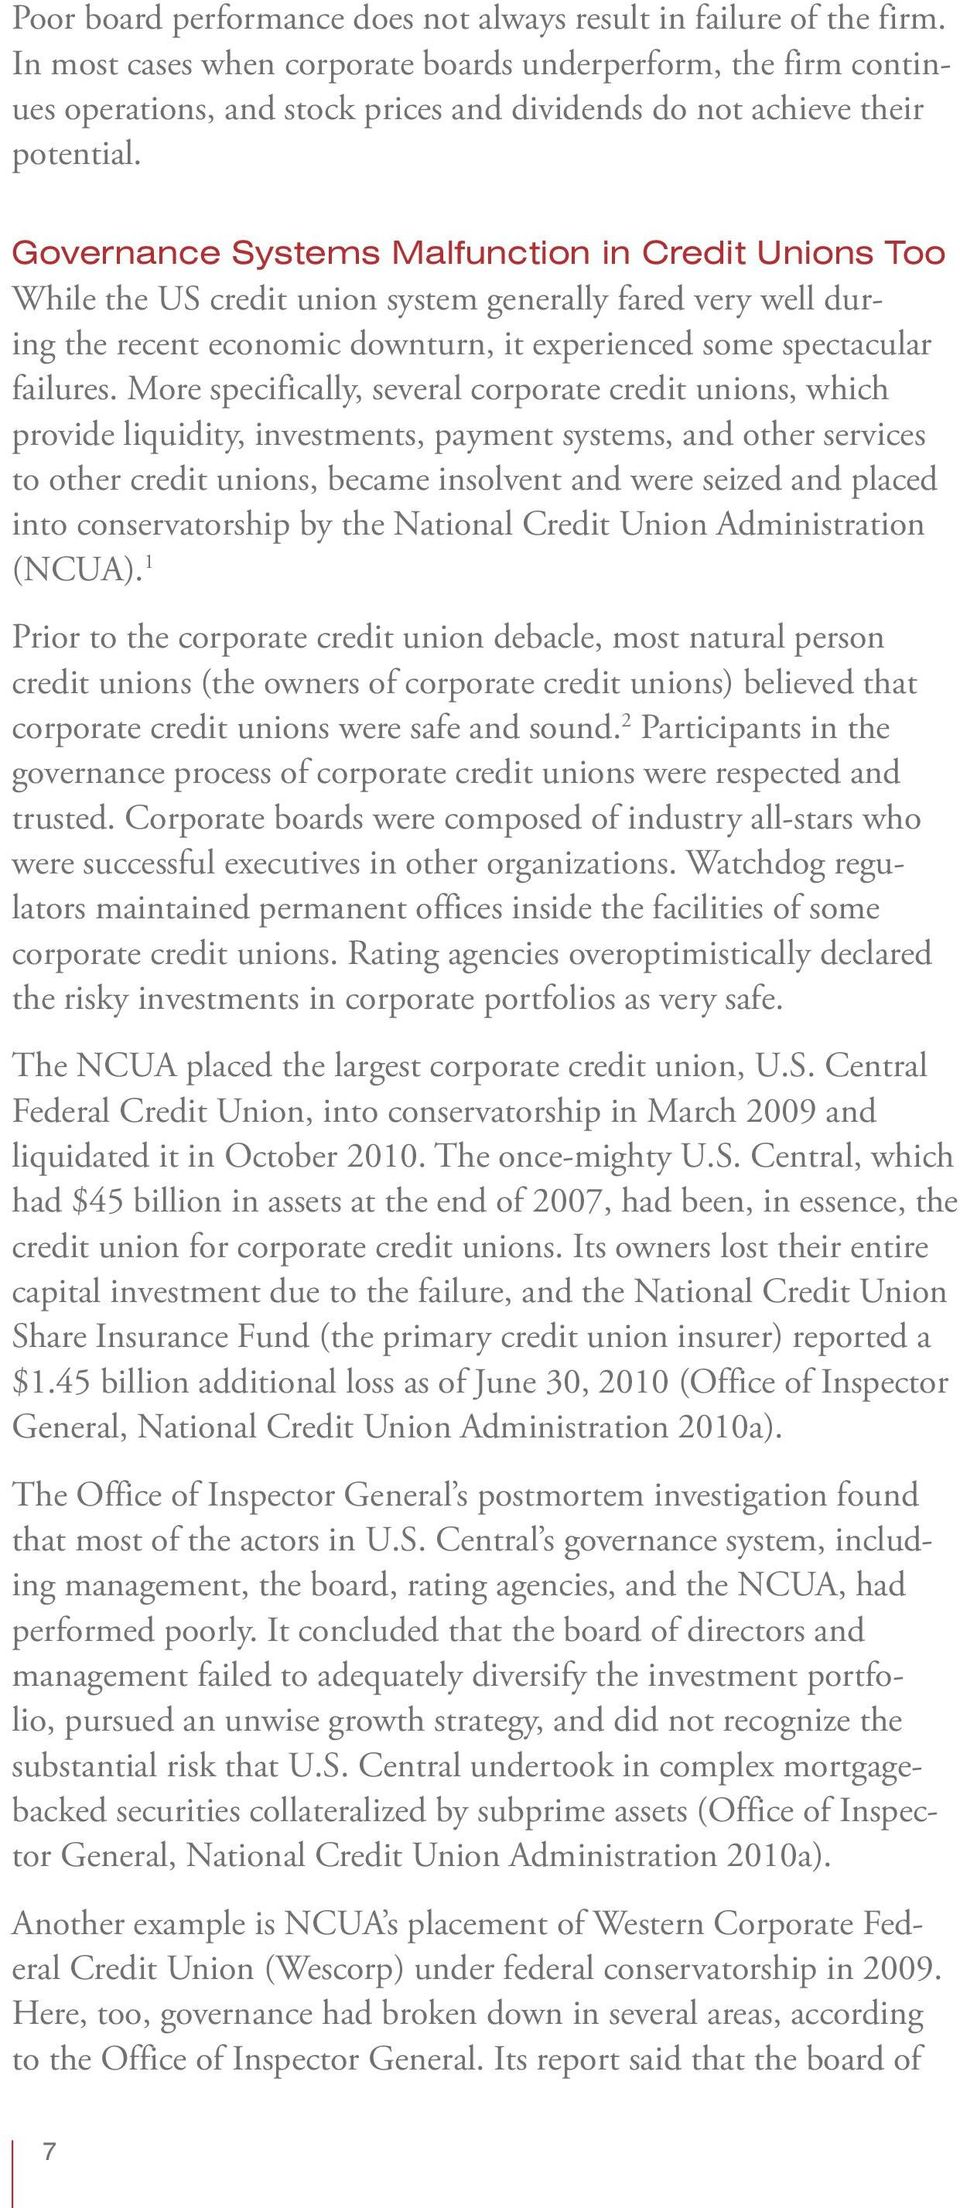 Governance Systems Malfunction in Credit Unions Too While the US credit union system generally fared very well during the recent economic downturn, it experienced some spectacular failures.